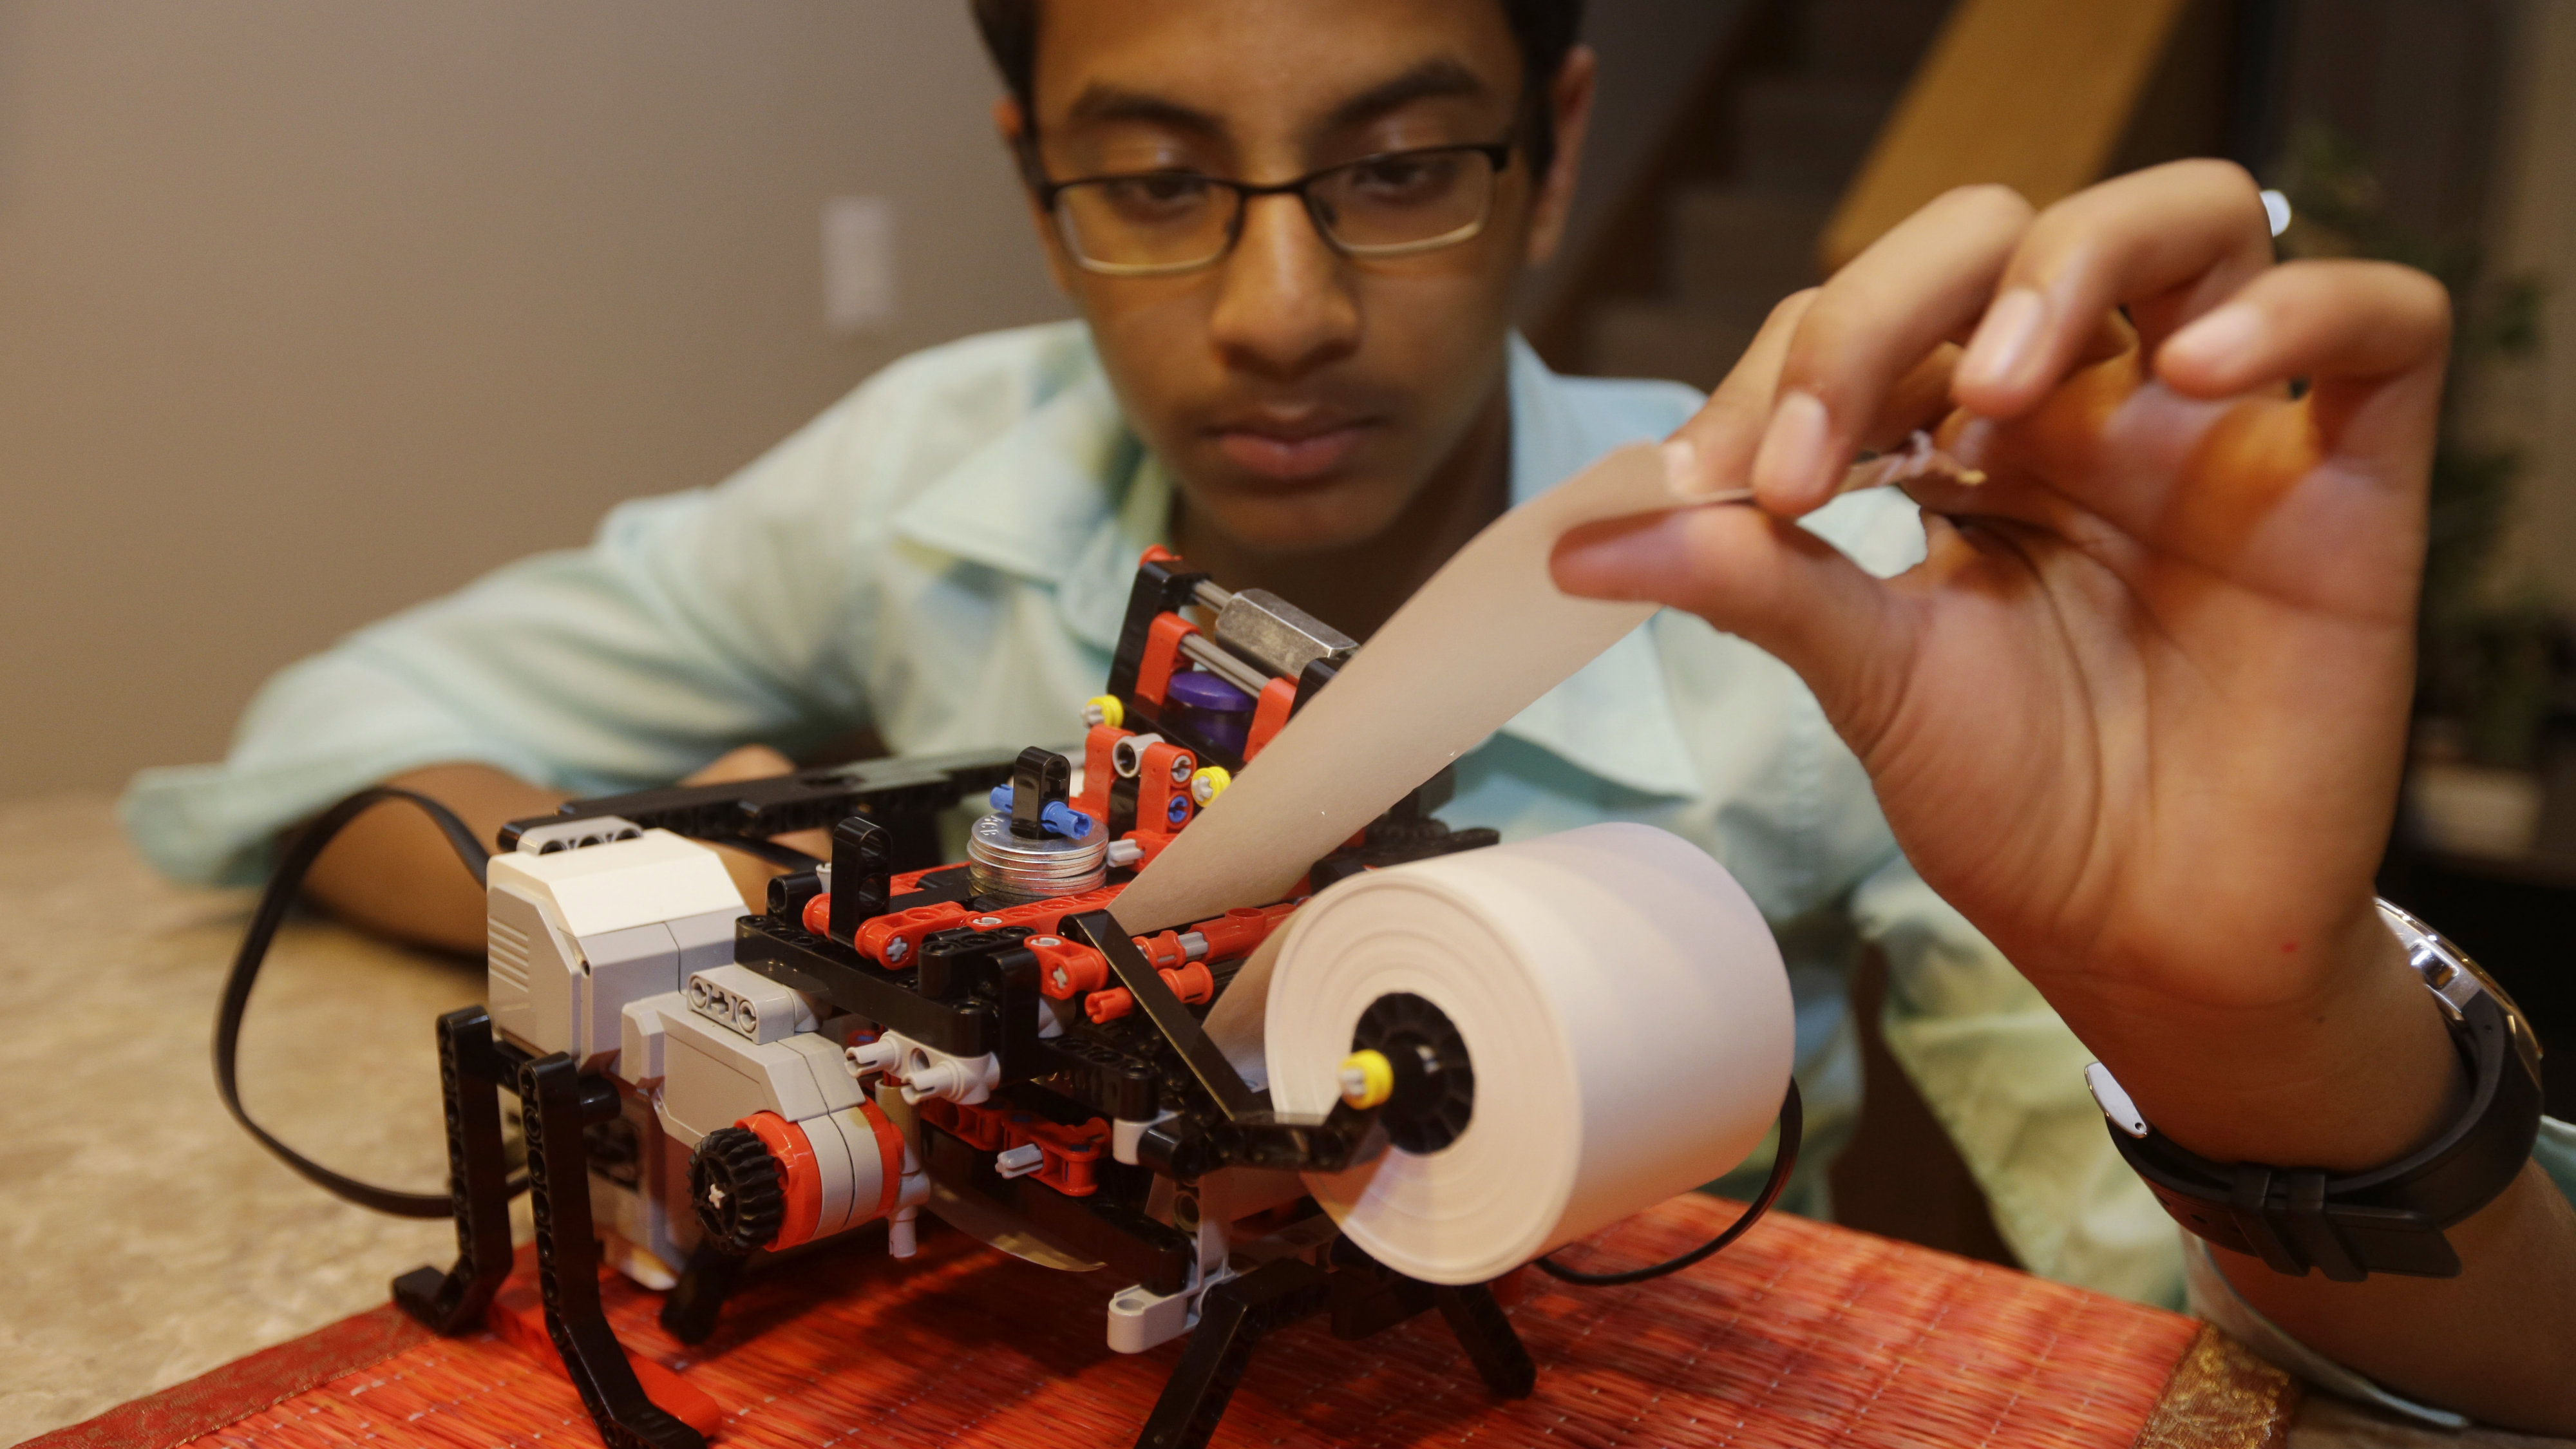 Shubham Banerjee works on his lego robotics braille printer at home Tuesday, Jan. 6, 2015, in Santa Clara, Calif. Banerjee launched a company to develop a low-cost machine to print Braille materials for the blind. It's based on a prototype he built with his Lego robotics kit for a school science fair project. Last month, tech giant Intel Corp. invested in his startup, Braigo Labs, making the 8th grader the youngest entrepreneur to receive venture capital funding.